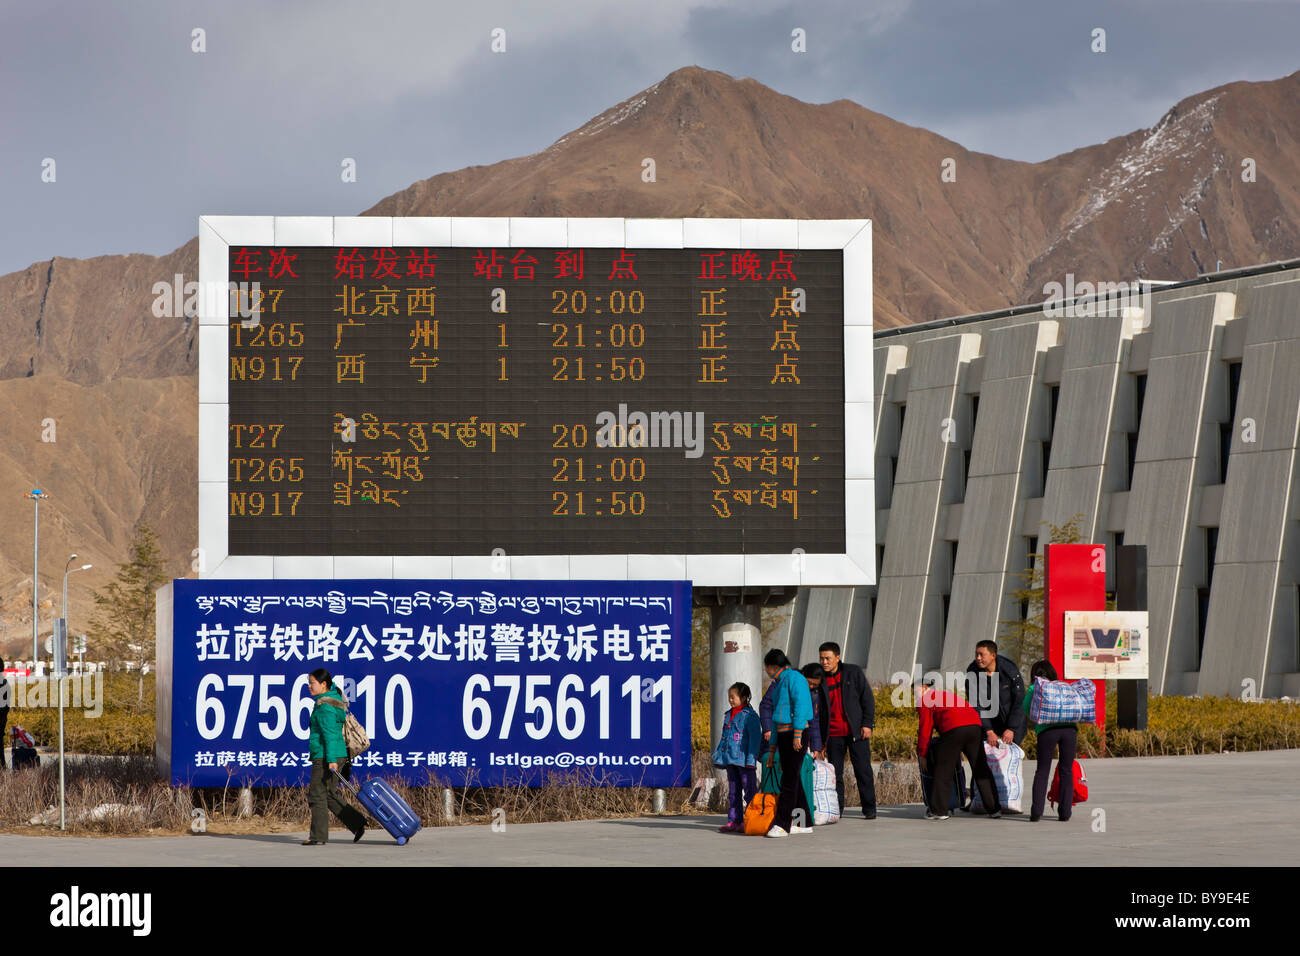 Departures board outside the railway station Lhasa Tibet. JMH4615 - Stock Image